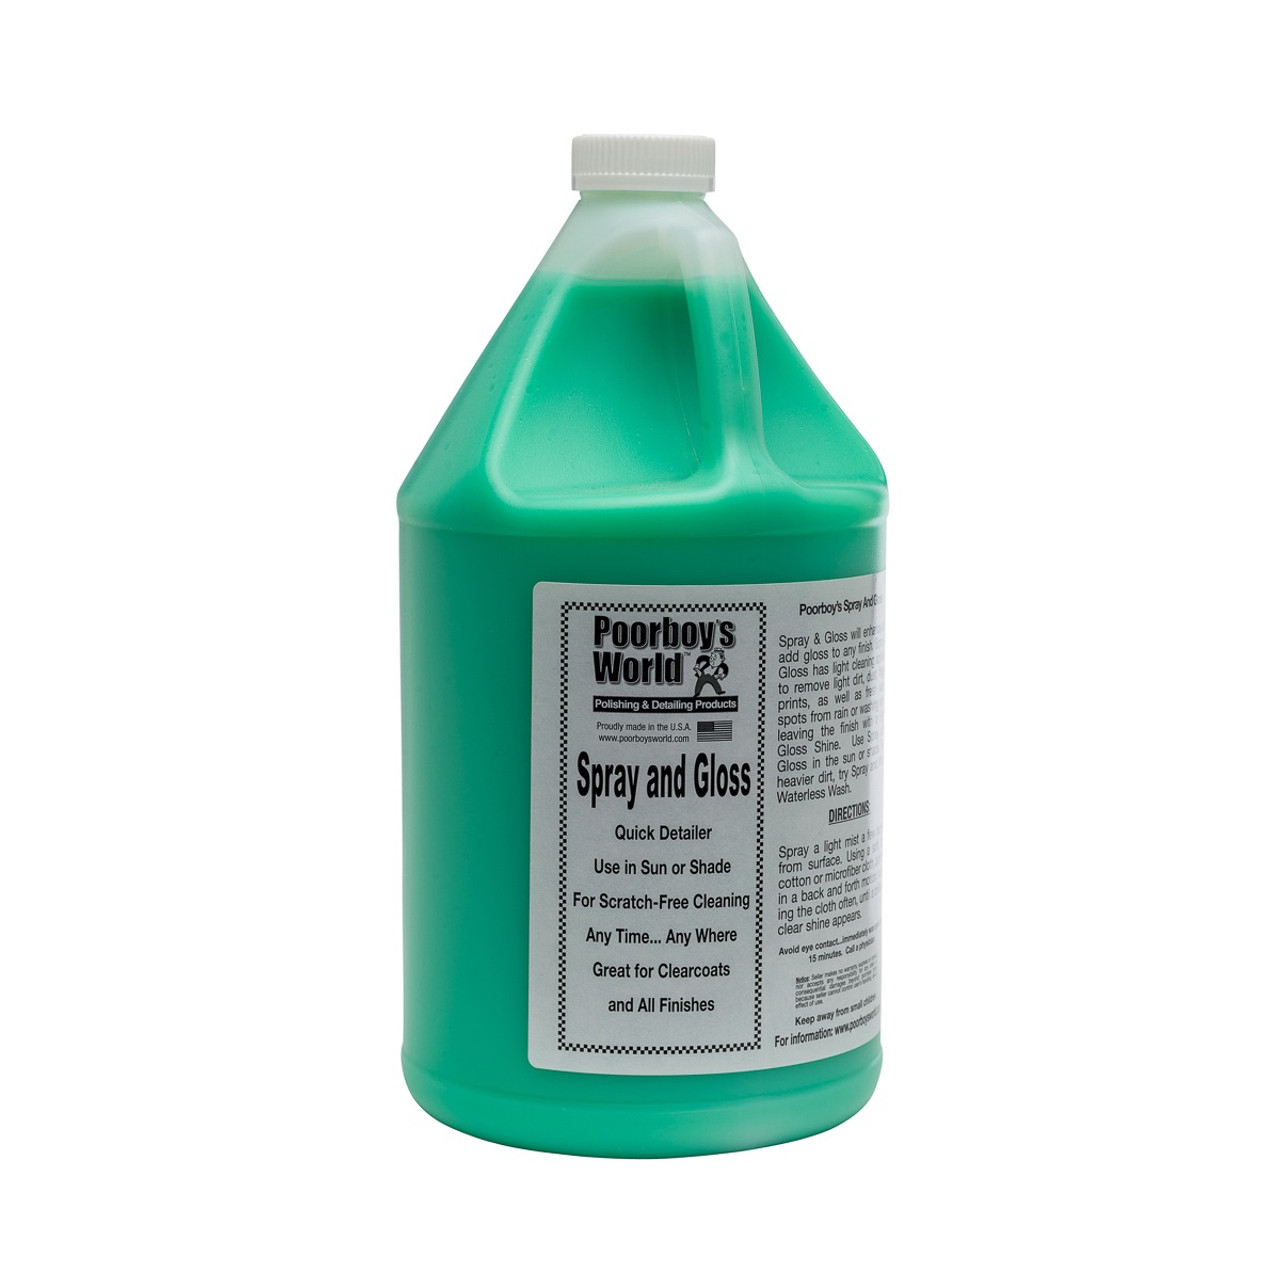 Poorboy's World Spray and Gloss Gallon